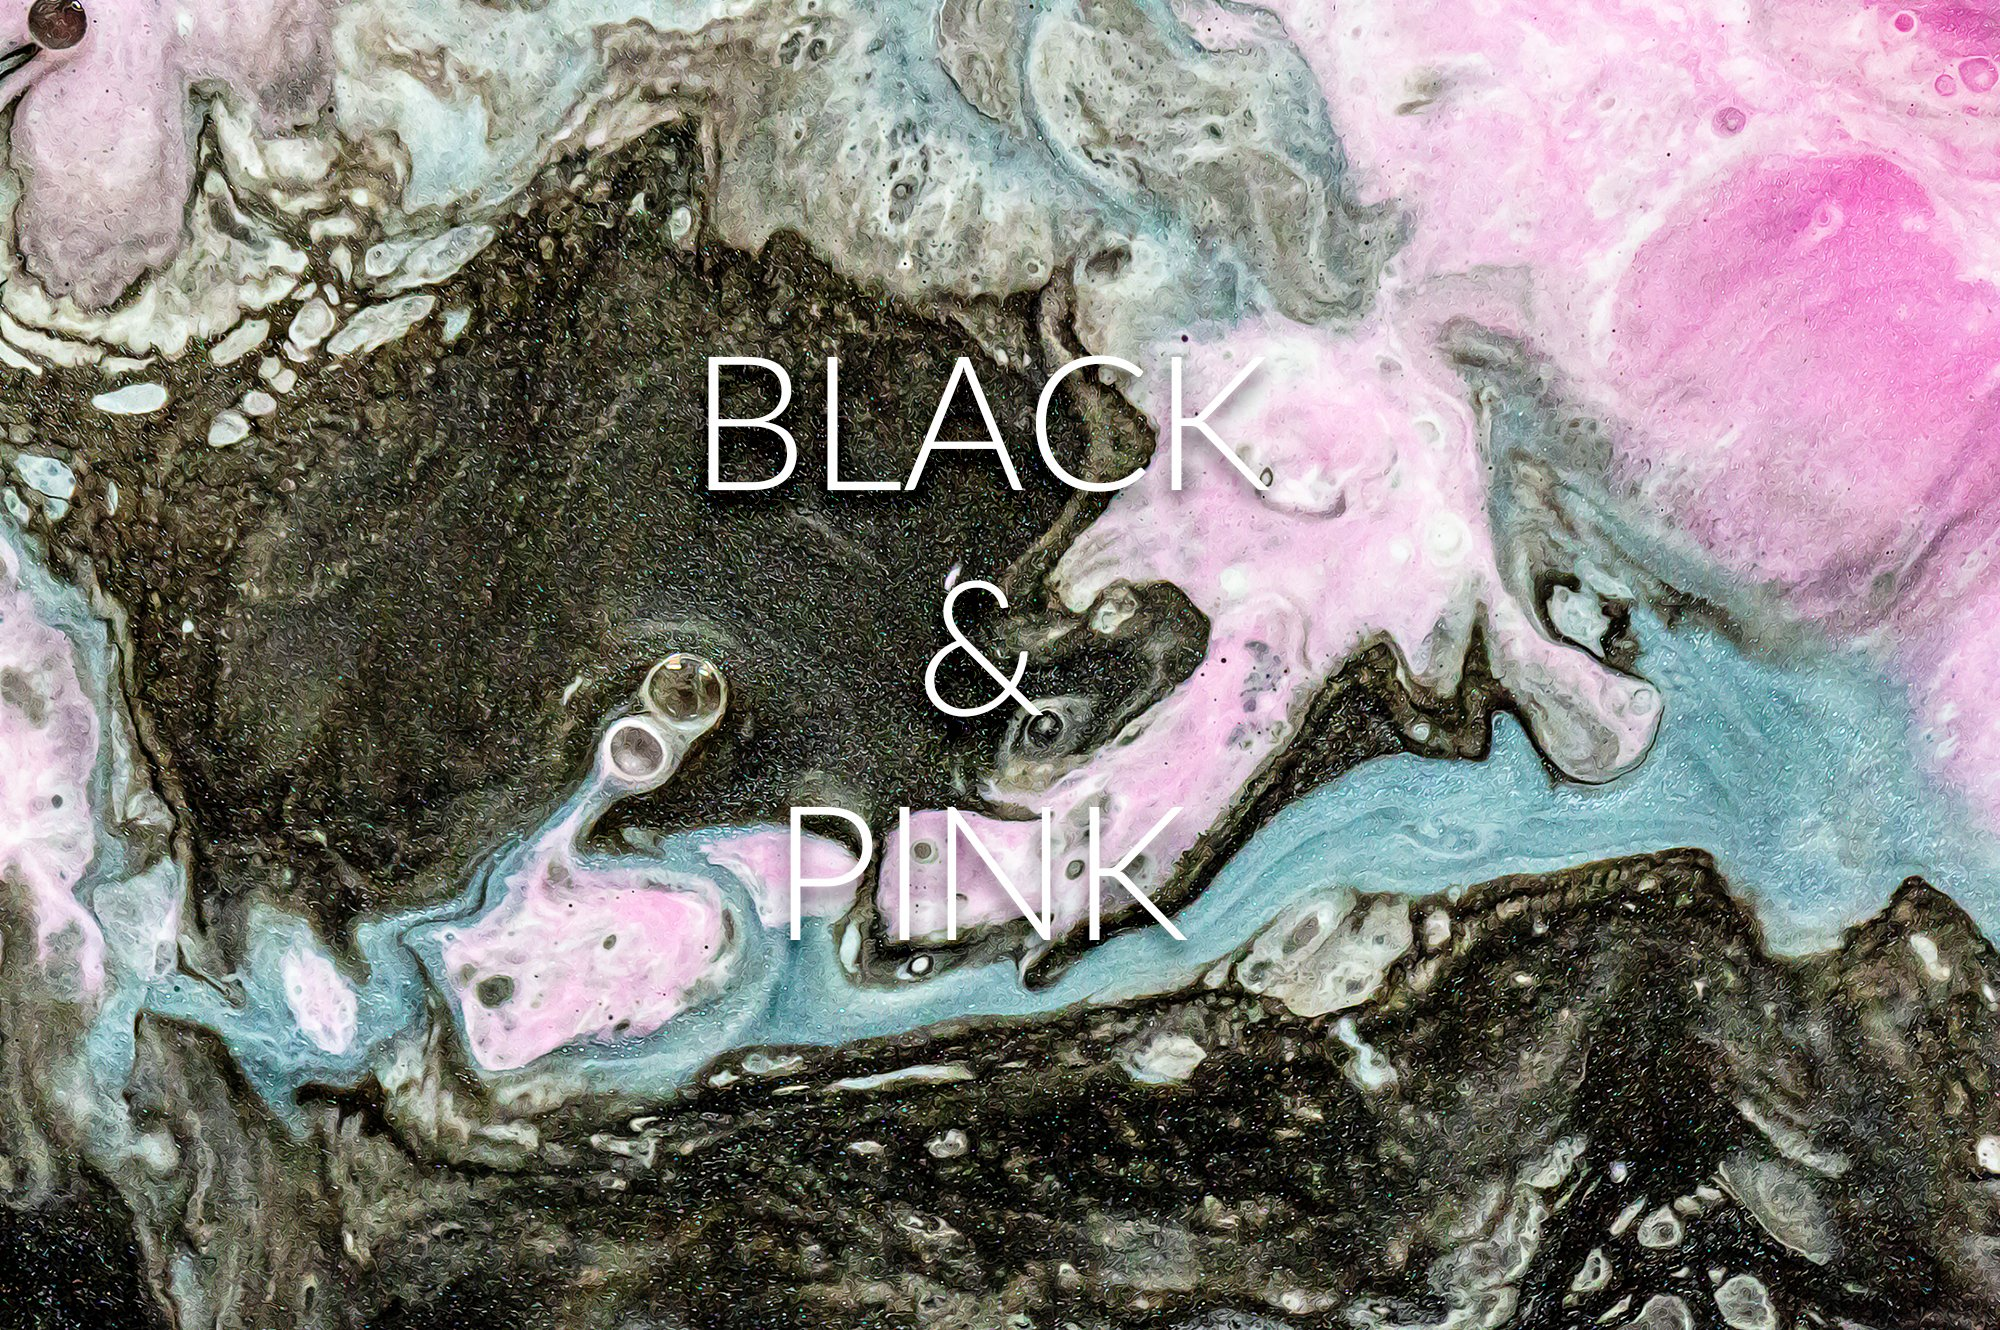 28款高清抽象流体黑色&粉色丙烯酸涂料背景纹理图片素材 Liquid Paint – Black&Pink Vol. 2插图